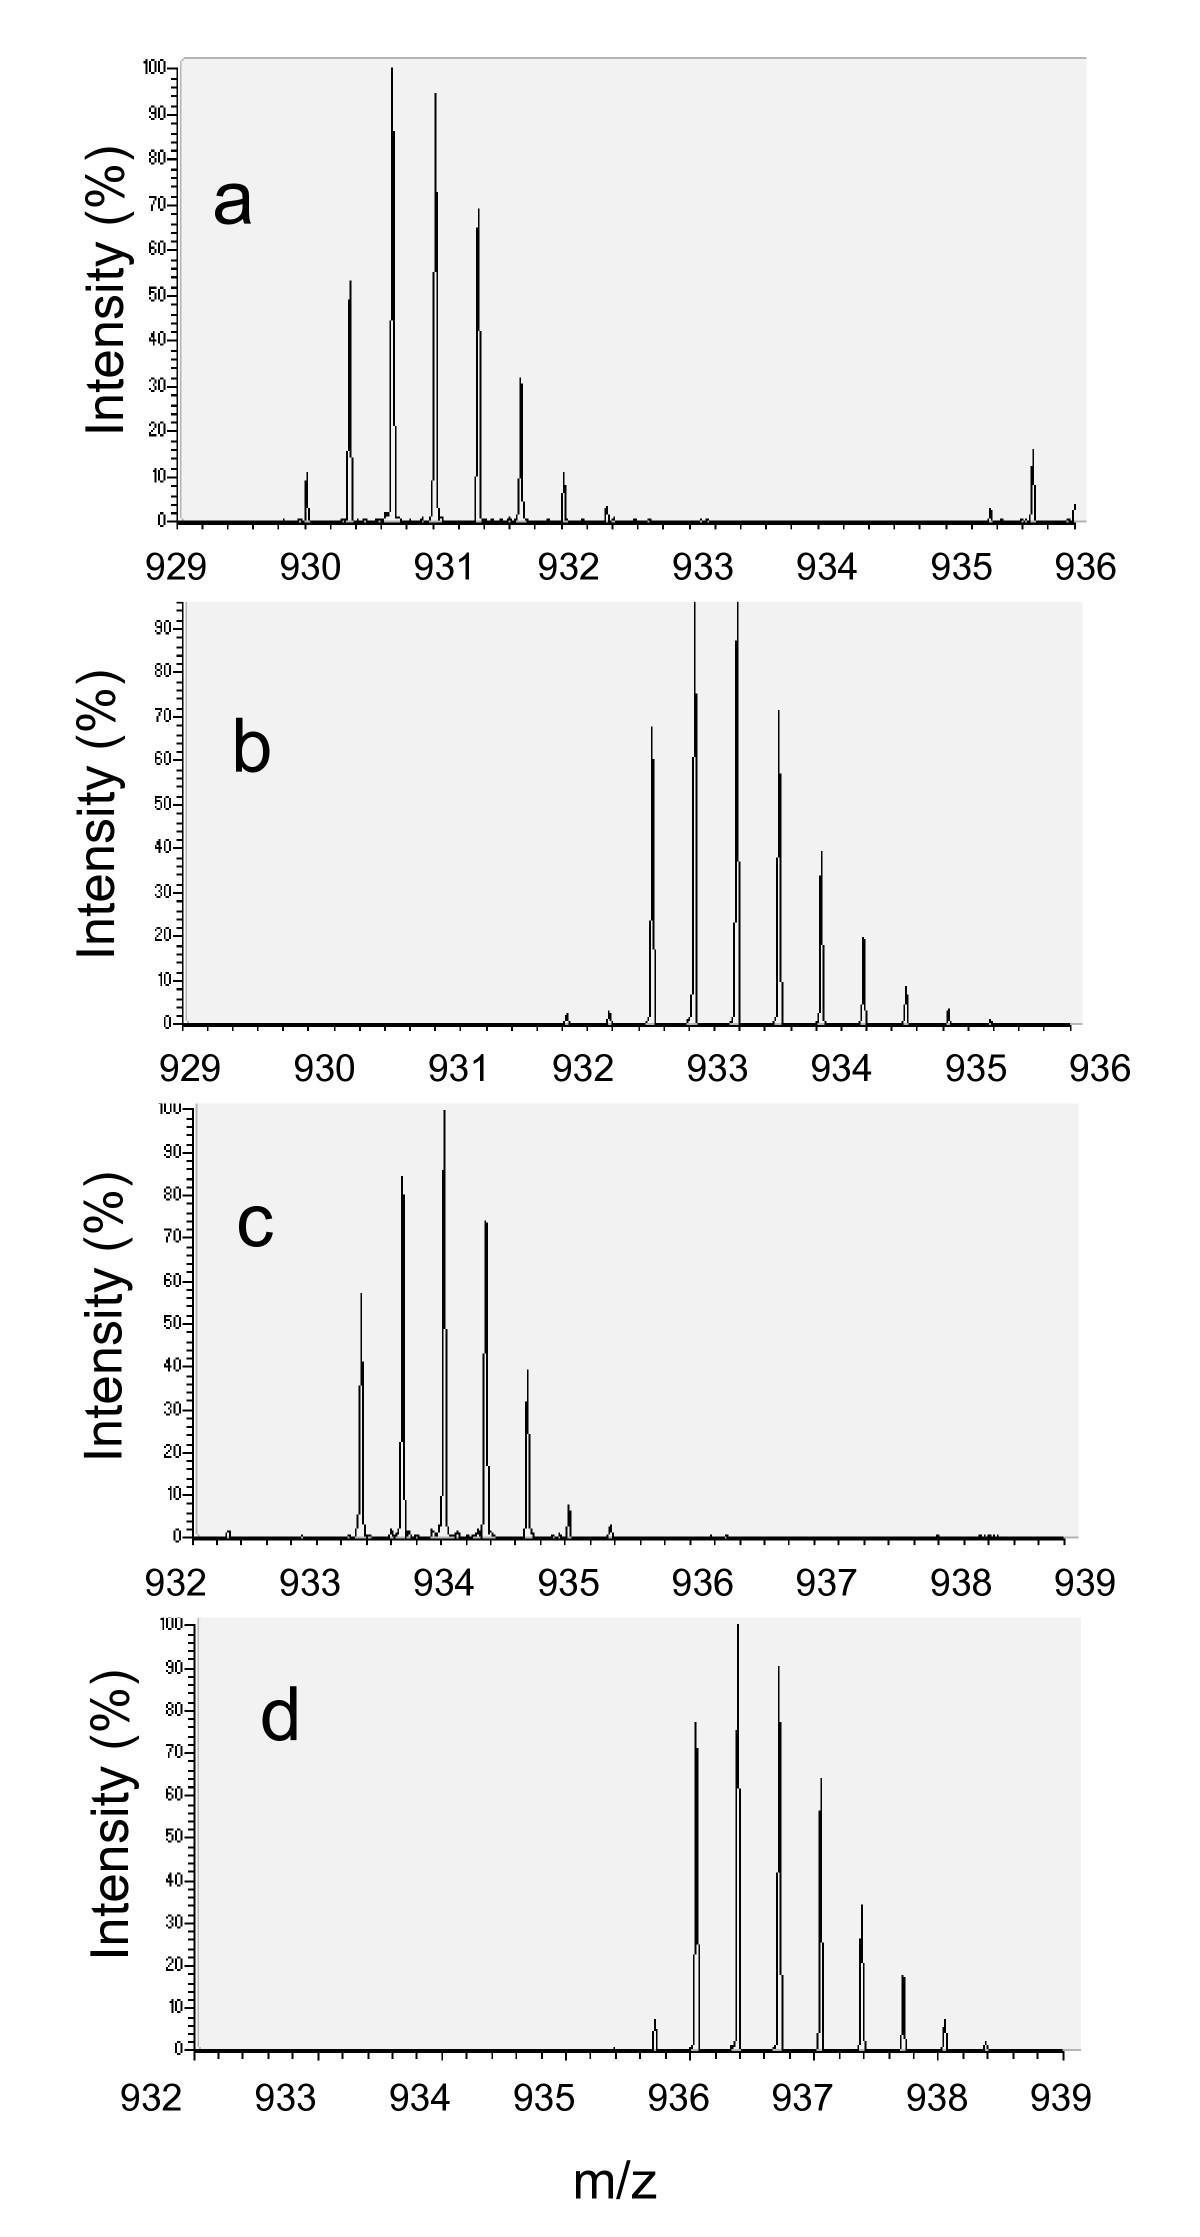 http://static-content.springer.com/image/art%3A10.1186%2F1477-5956-6-28/MediaObjects/12953_2008_Article_96_Fig1_HTML.jpg